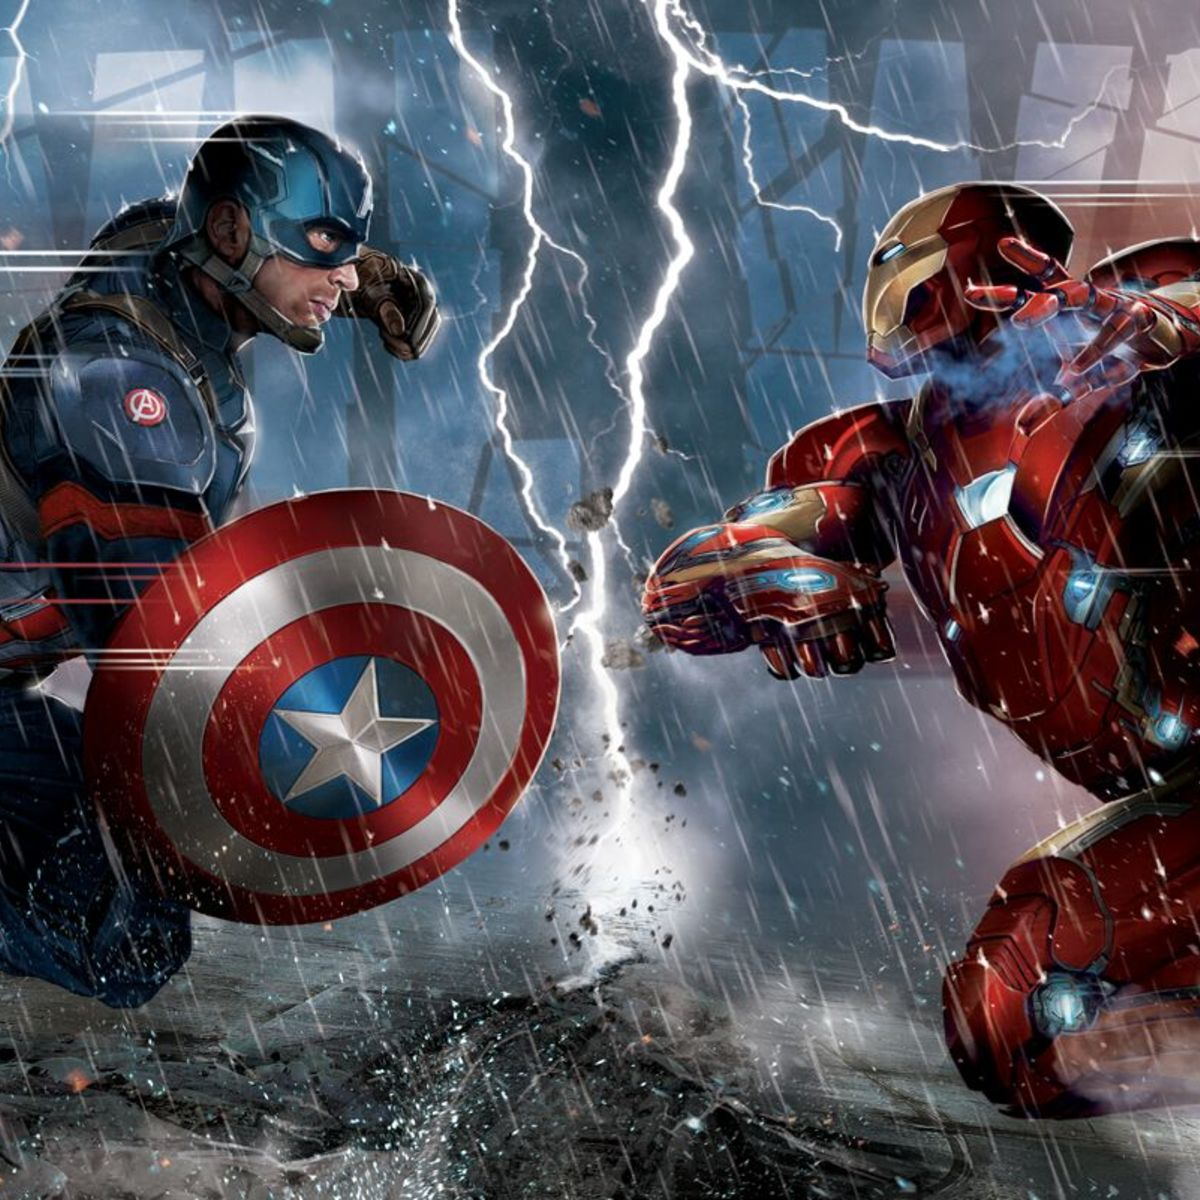 Captain-America-Civil-War-Iron-Man-vs-Steve-Rogers.jpg